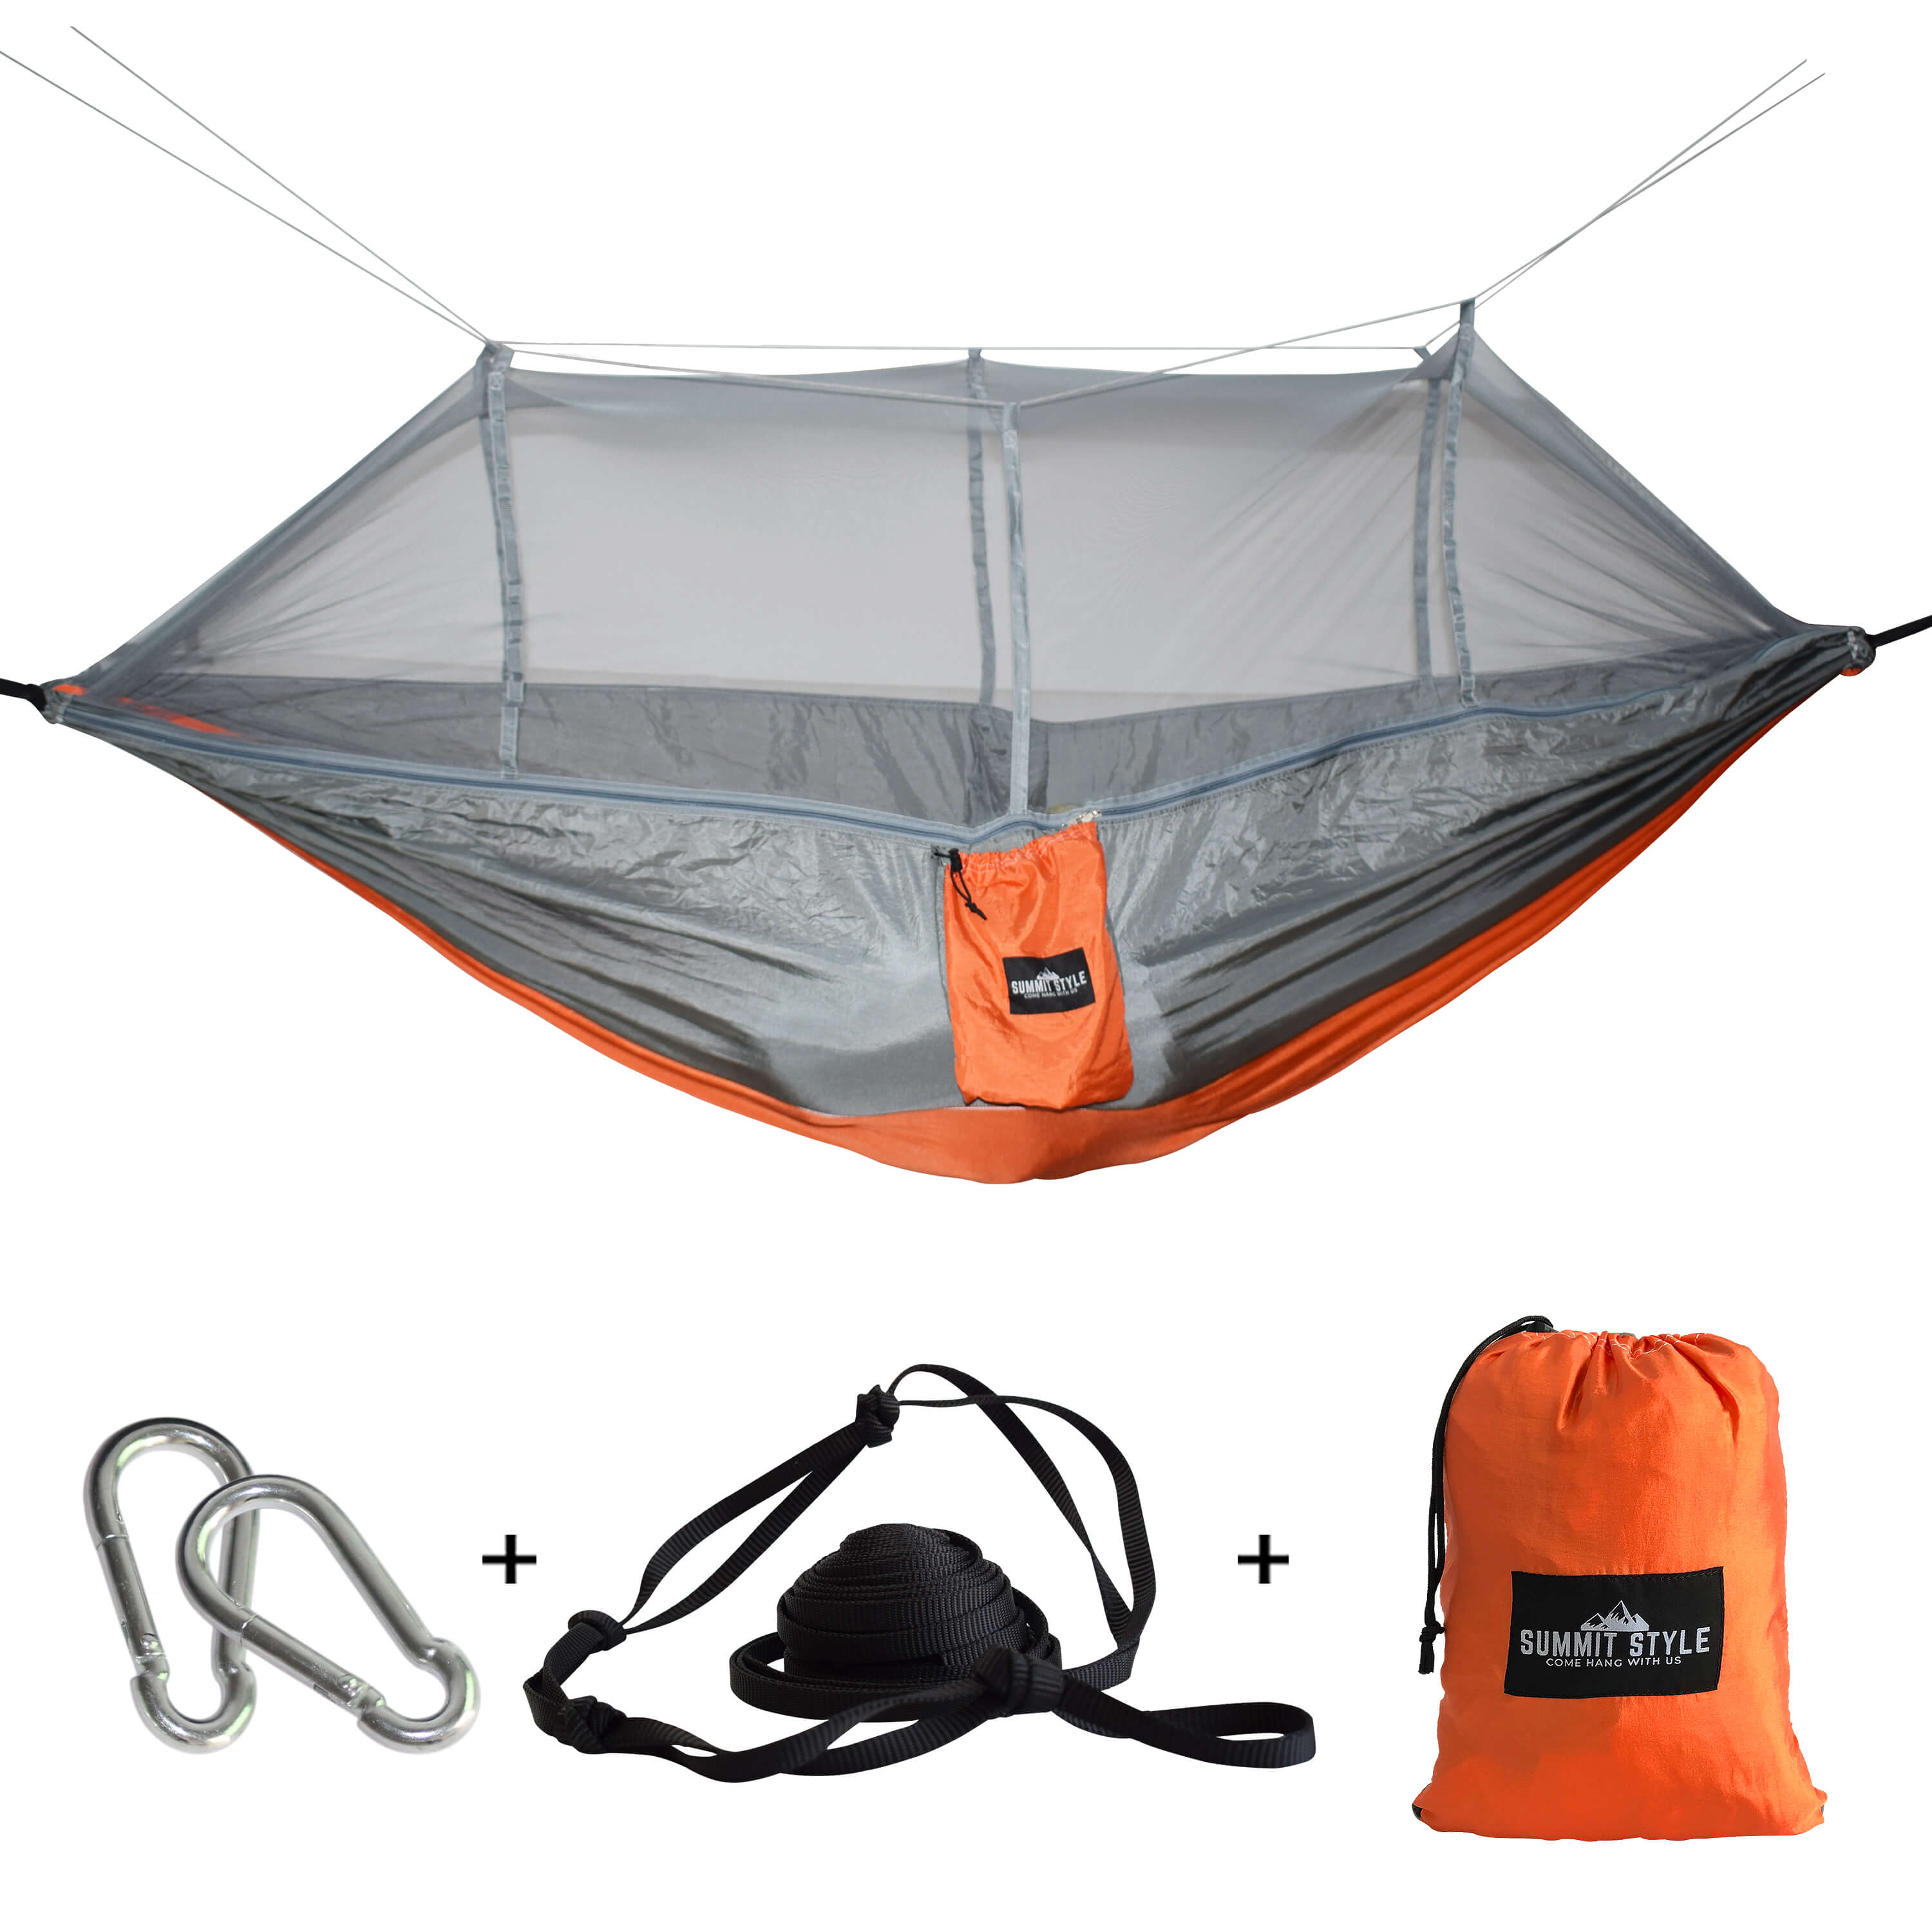 Summit Style's Nature Nest Hammock with Mosquito Net: Grey and Orange